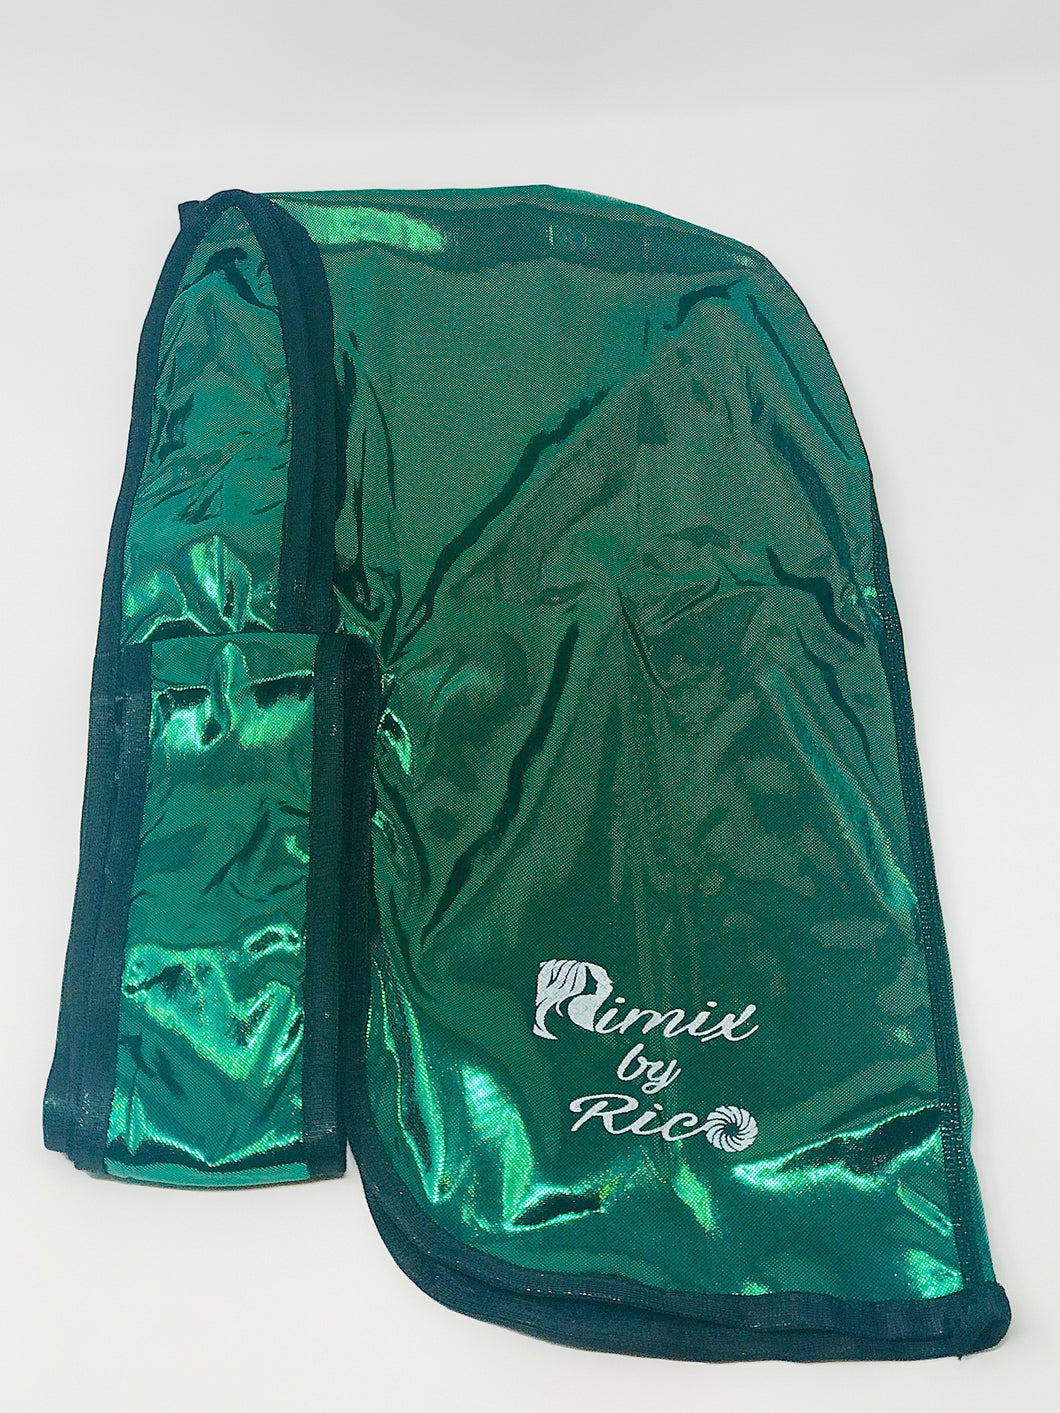 Rimix 8K Ultra Tuxedo Durag**Limited Edition - Green/Black Trim